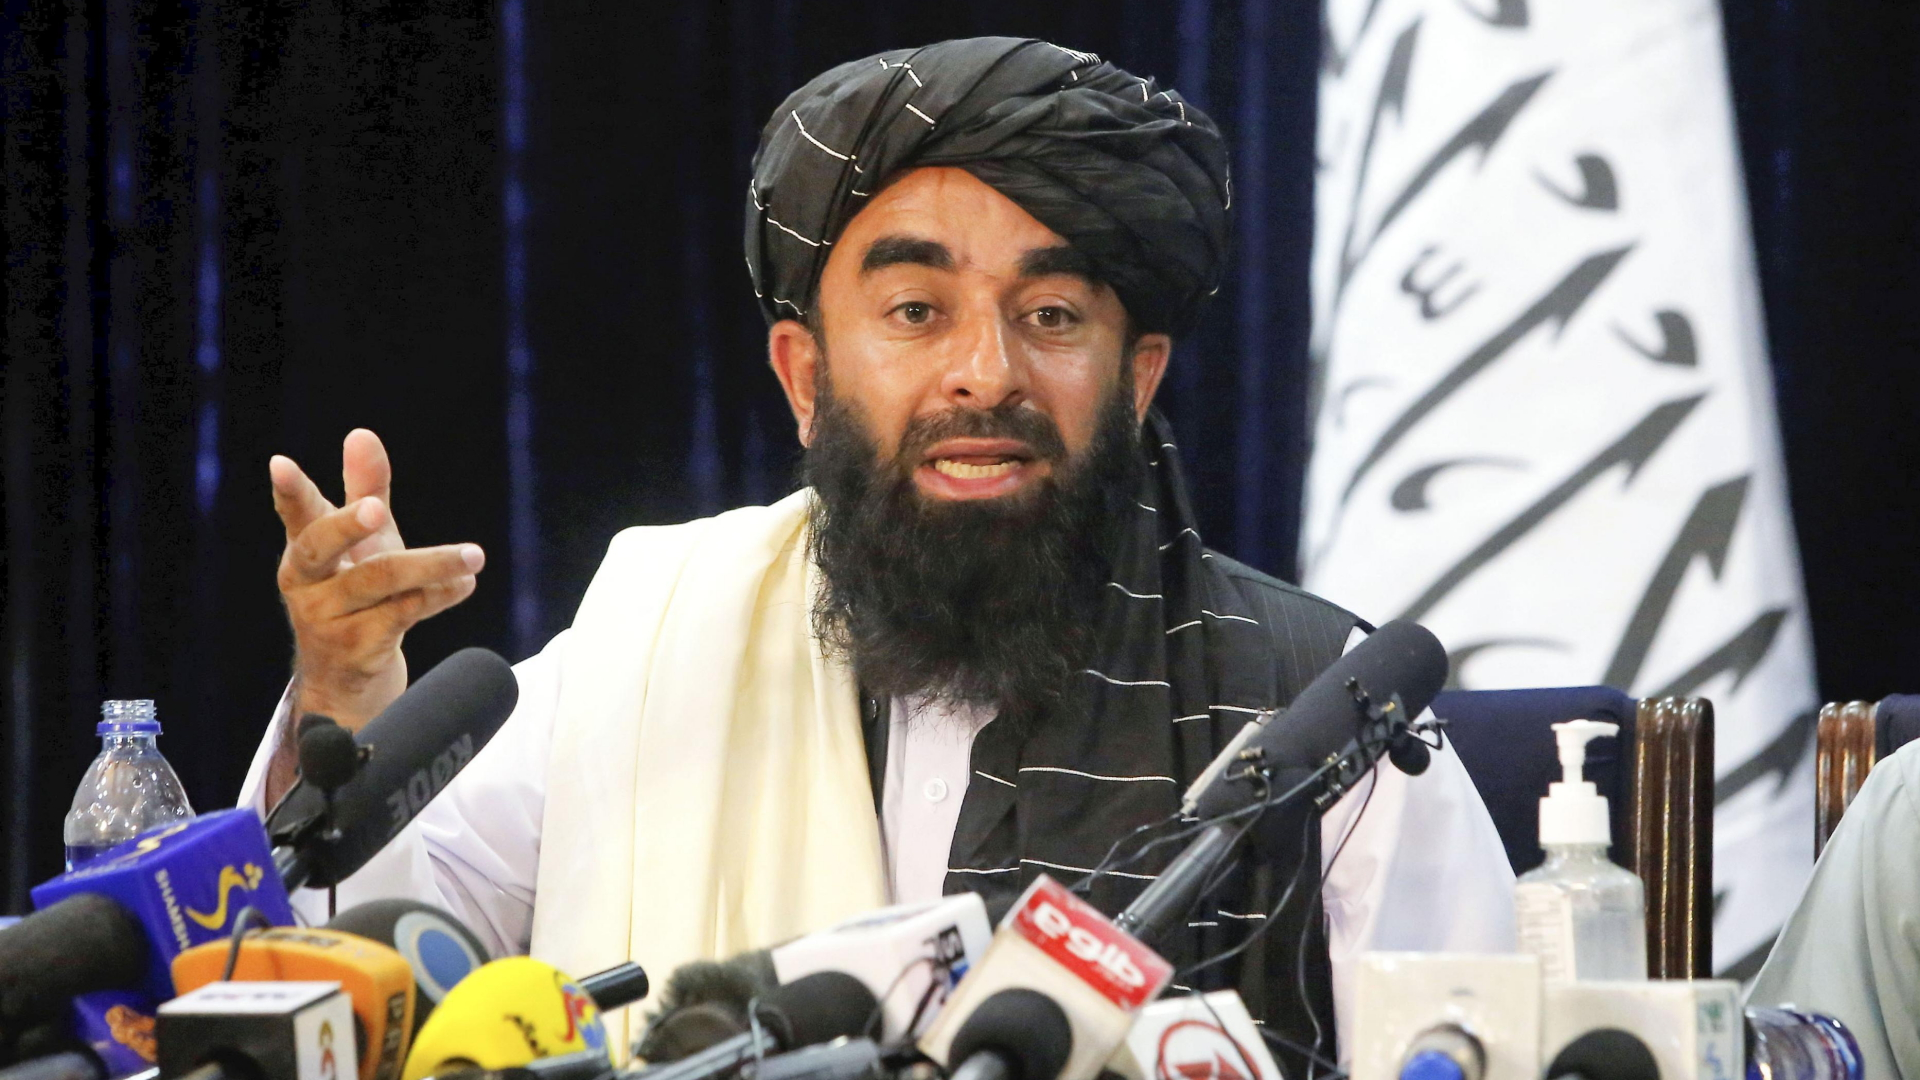 """Taliban demands from Germany: """"I want diplomatic relations"""""""